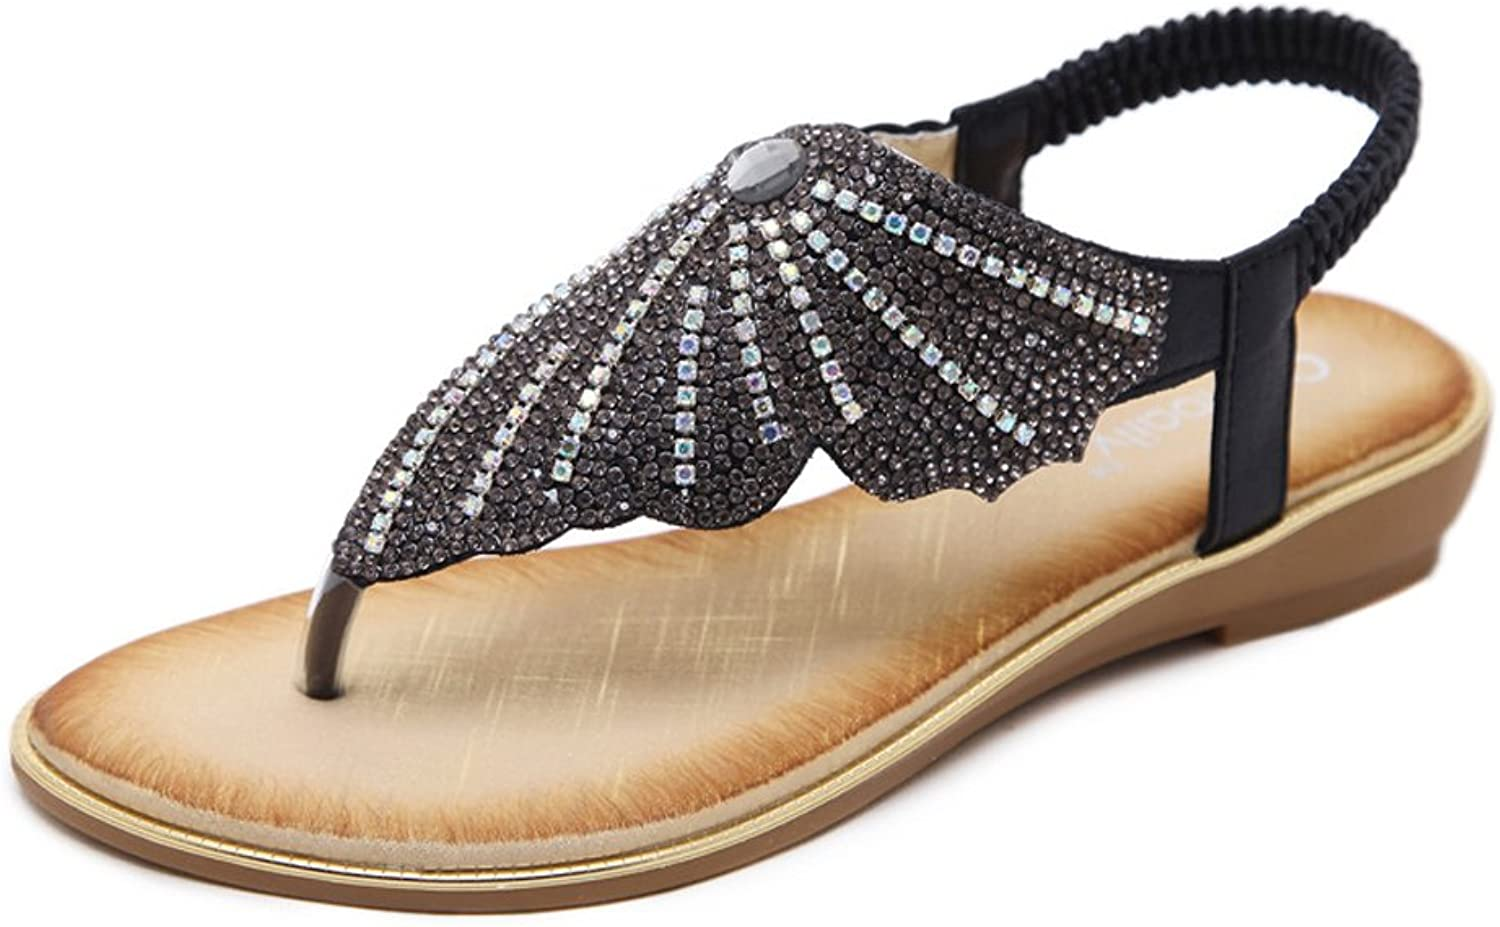 Baviue Womens Fashion Leather Jeweled Thong Summer Sandals